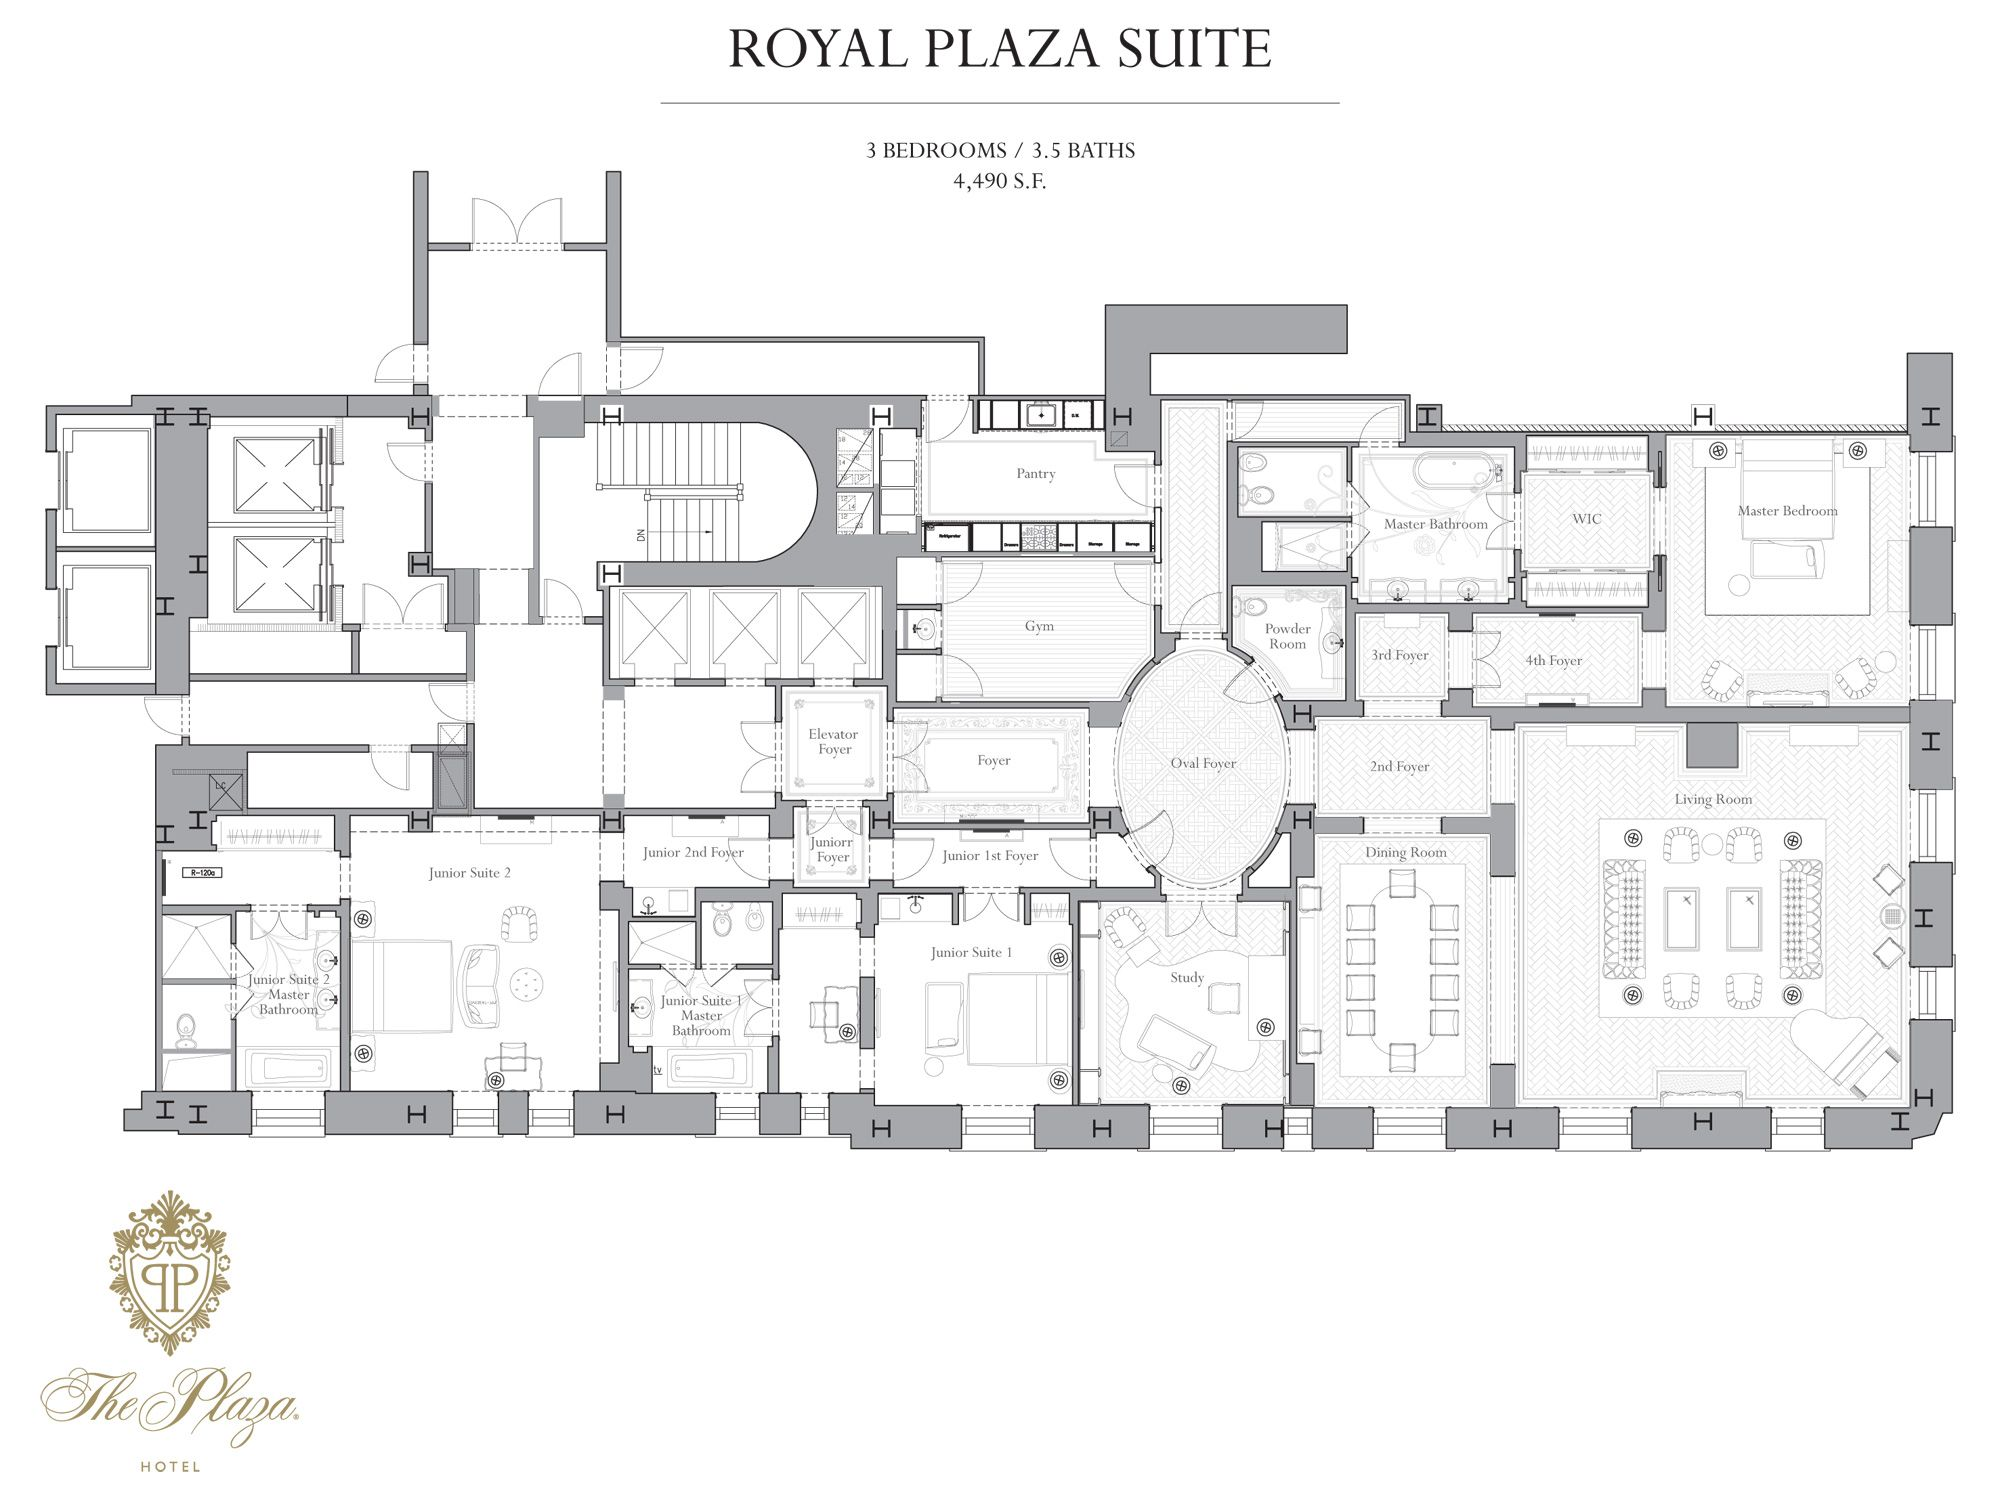 4900 Square Feet The Royal Plaza Suite At The Plaza Hotel Nyc Hotel Suite Floor Plan Floor Plans Hotel Suite Plan